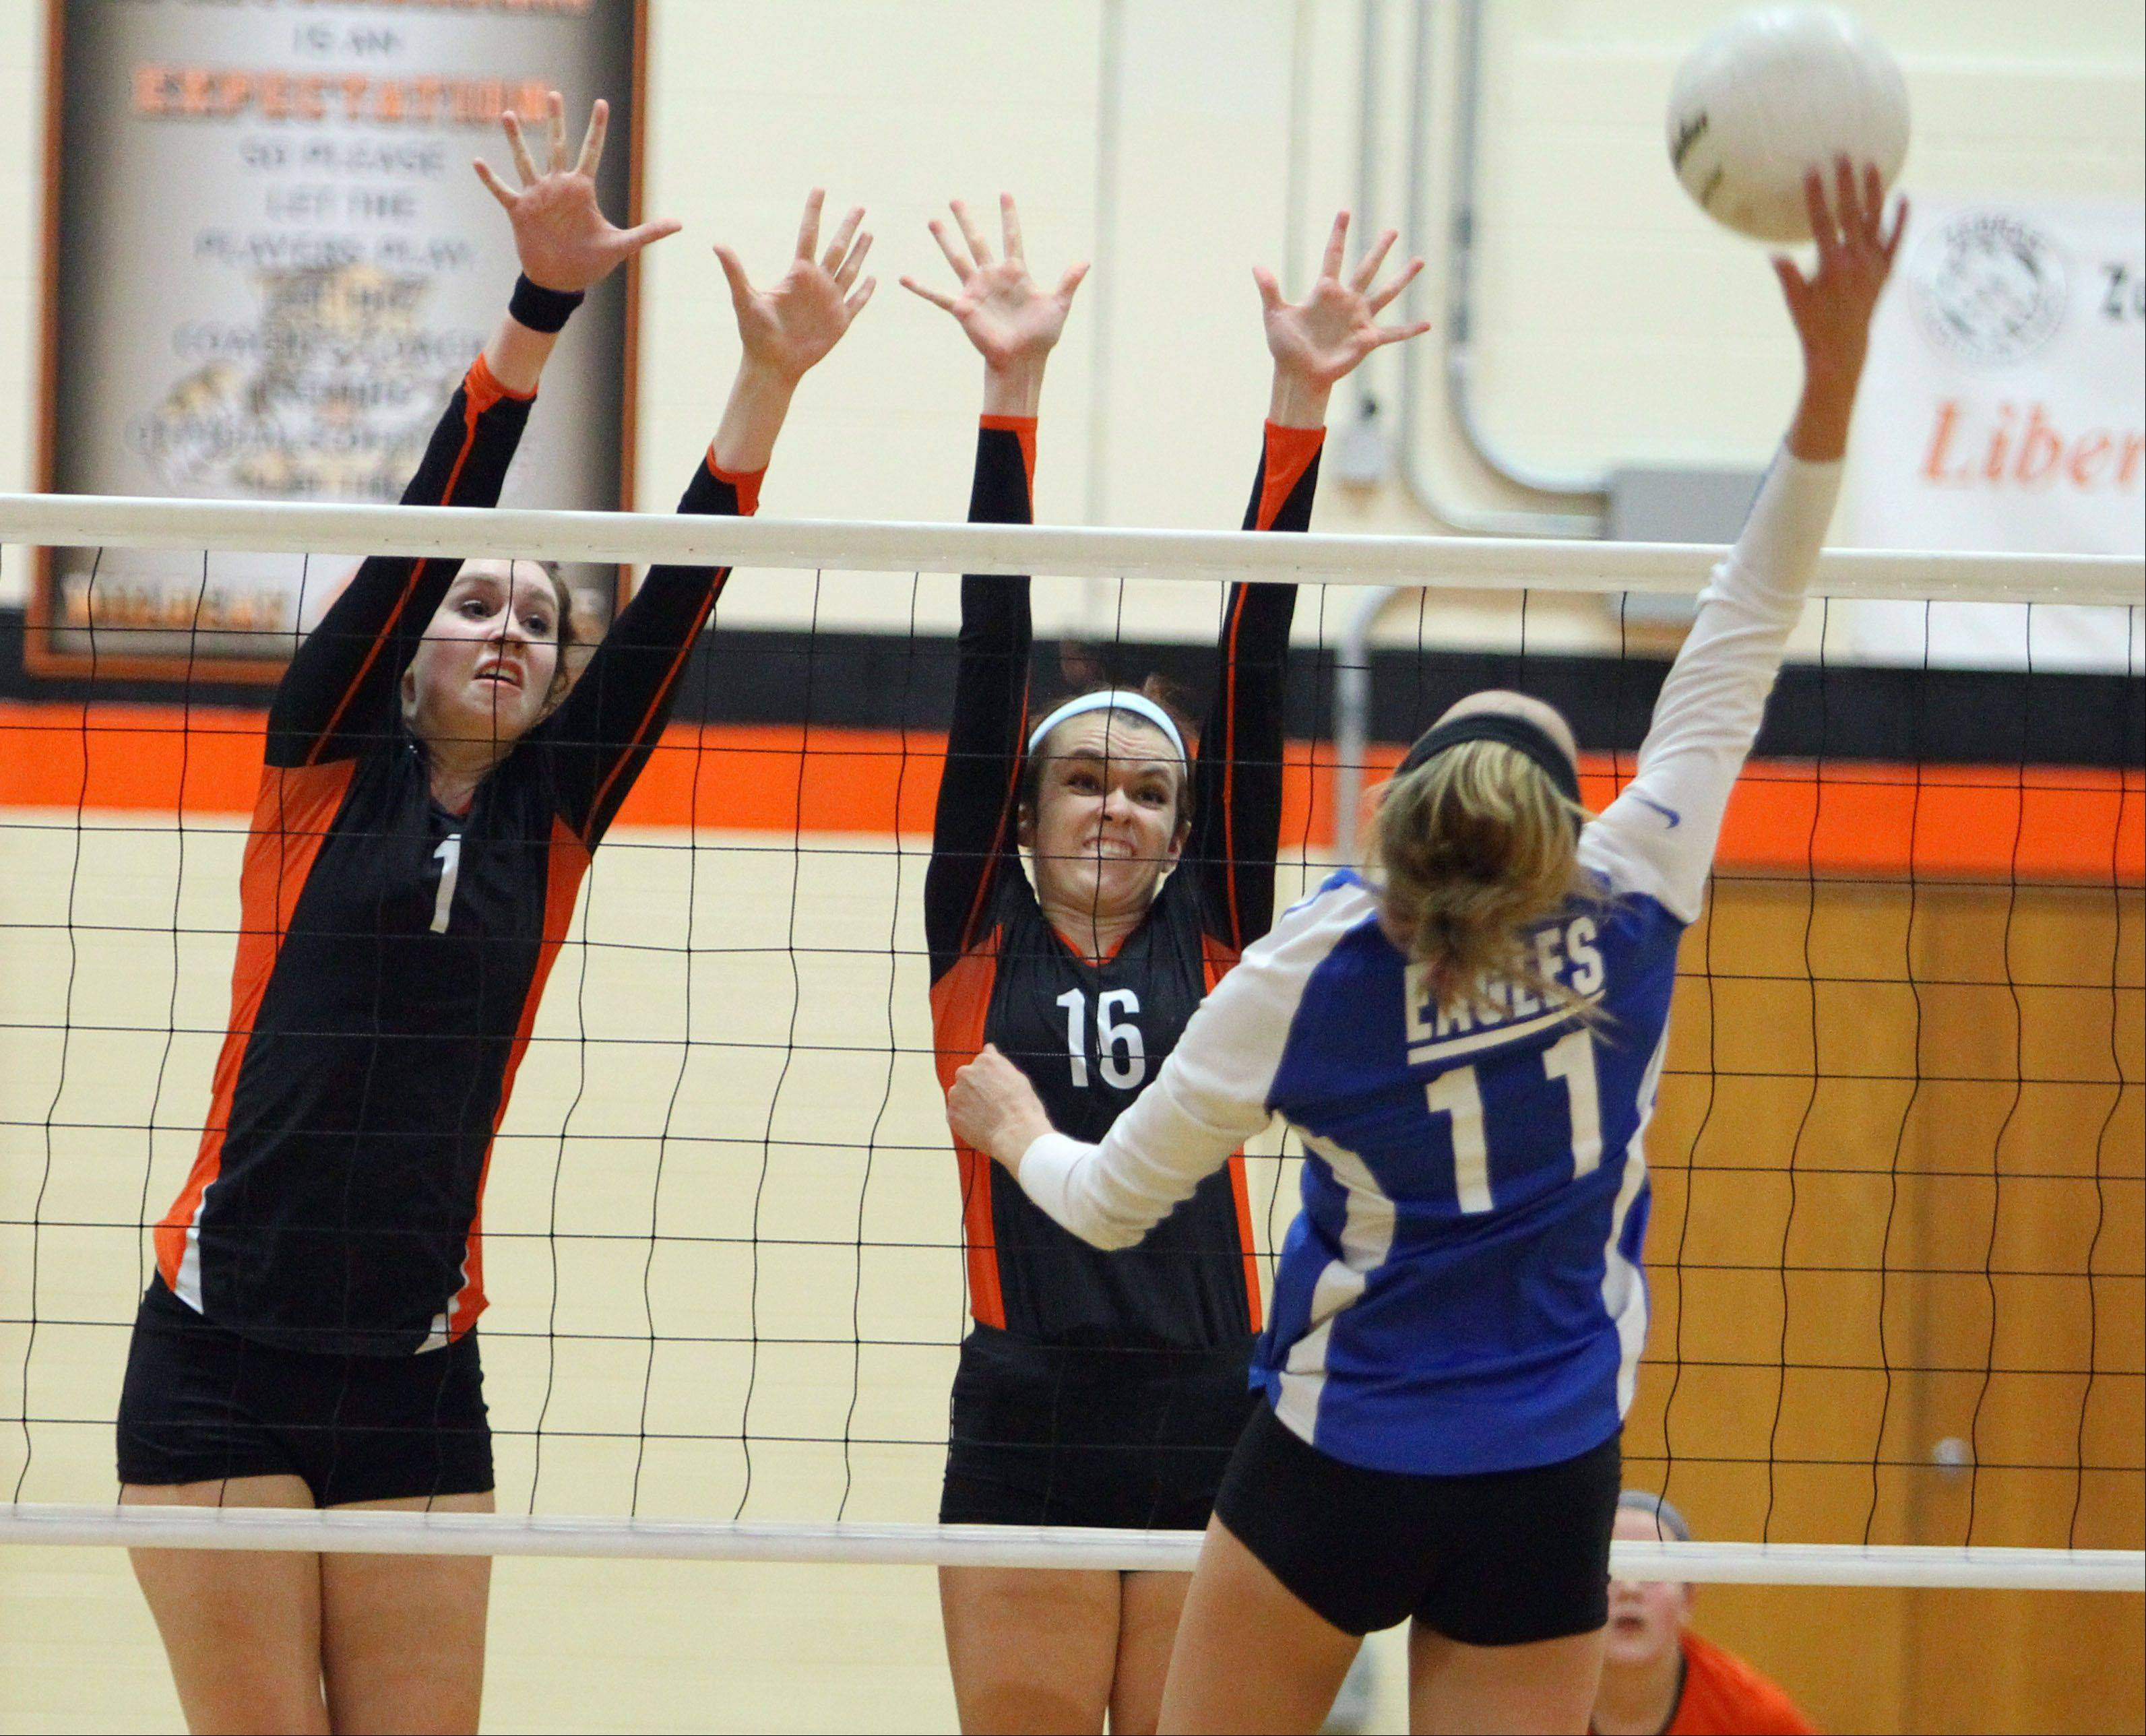 Lakes' Alex Silvola, right, spikes one at Libertyville's Alex Basler and Rhiannon Prentiss during the NSC title game Wednesday night at Libertyville.